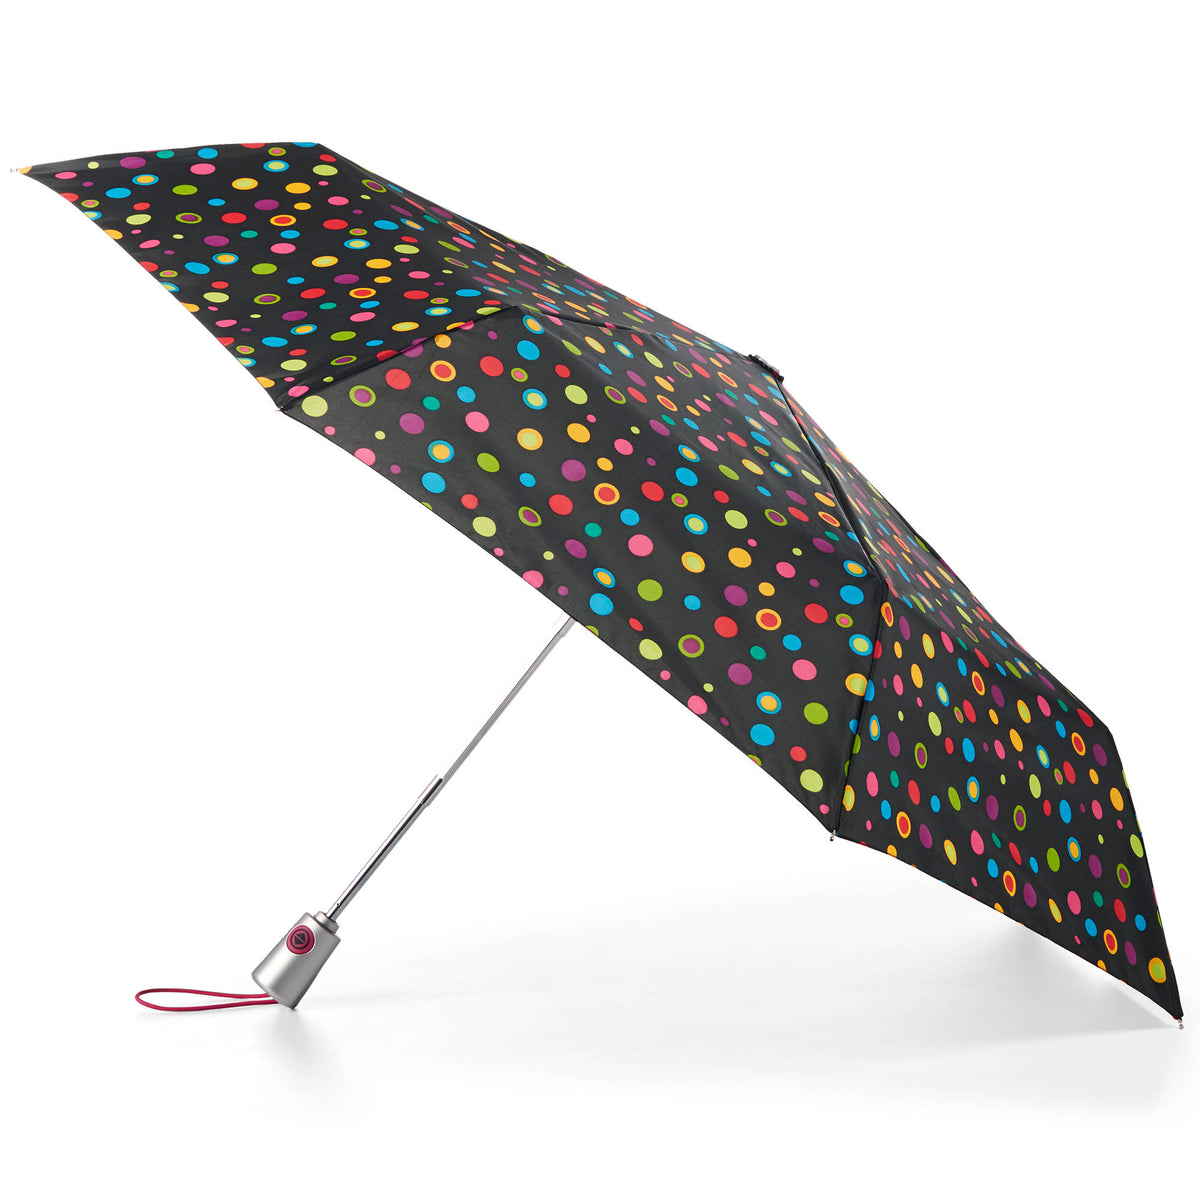 totes Auto Open Close Compact Neverwet Umbrella neon dots side view open